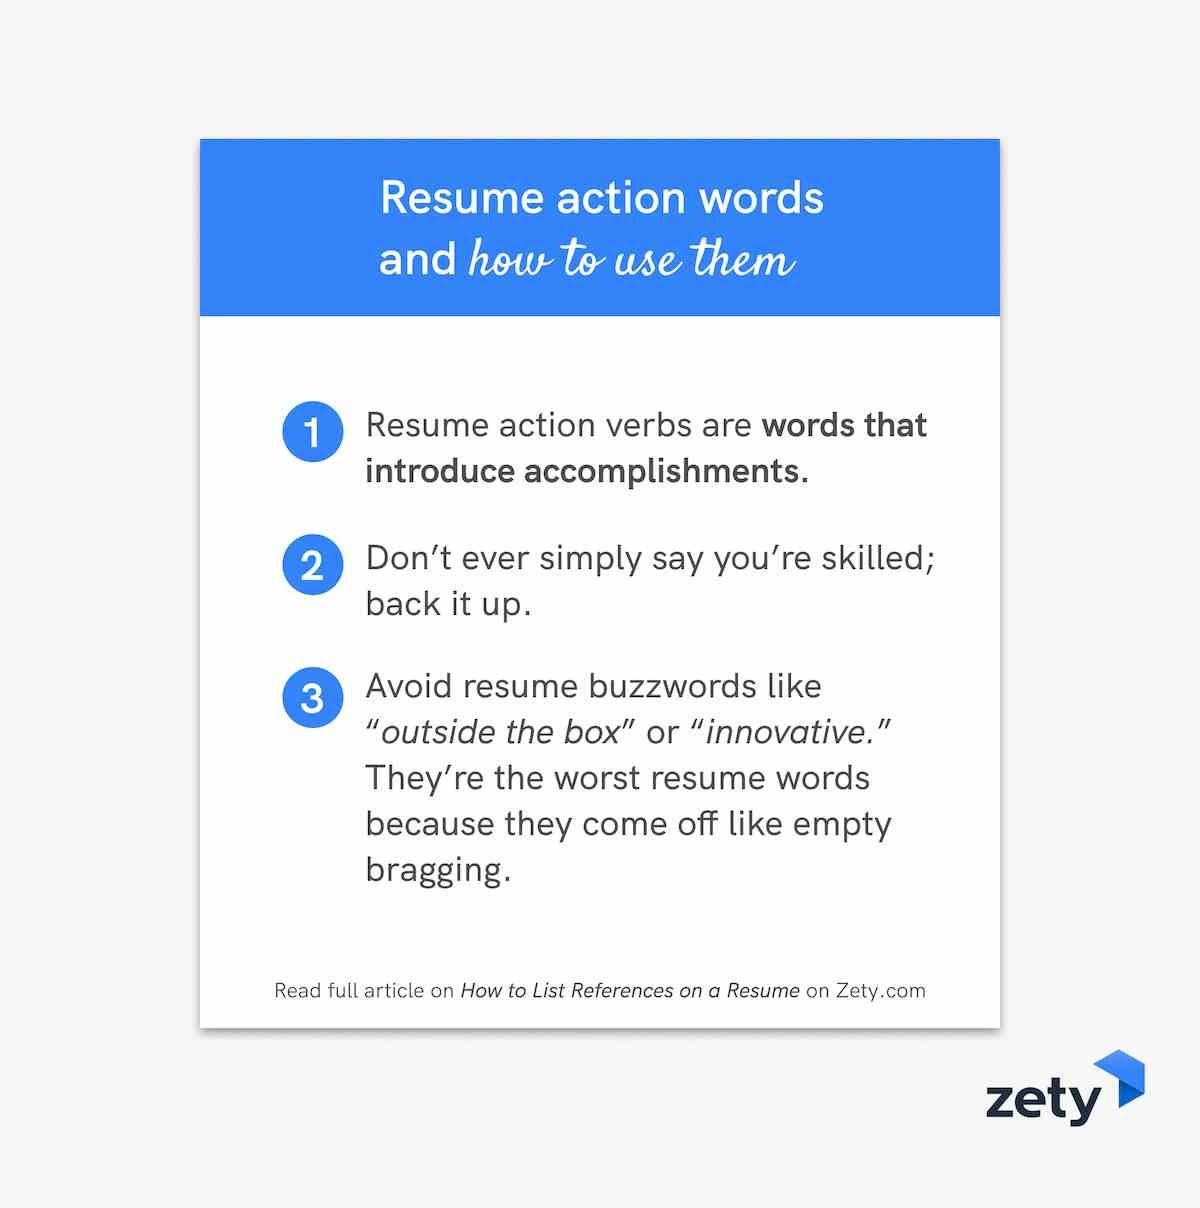 Resume action words and how to use them